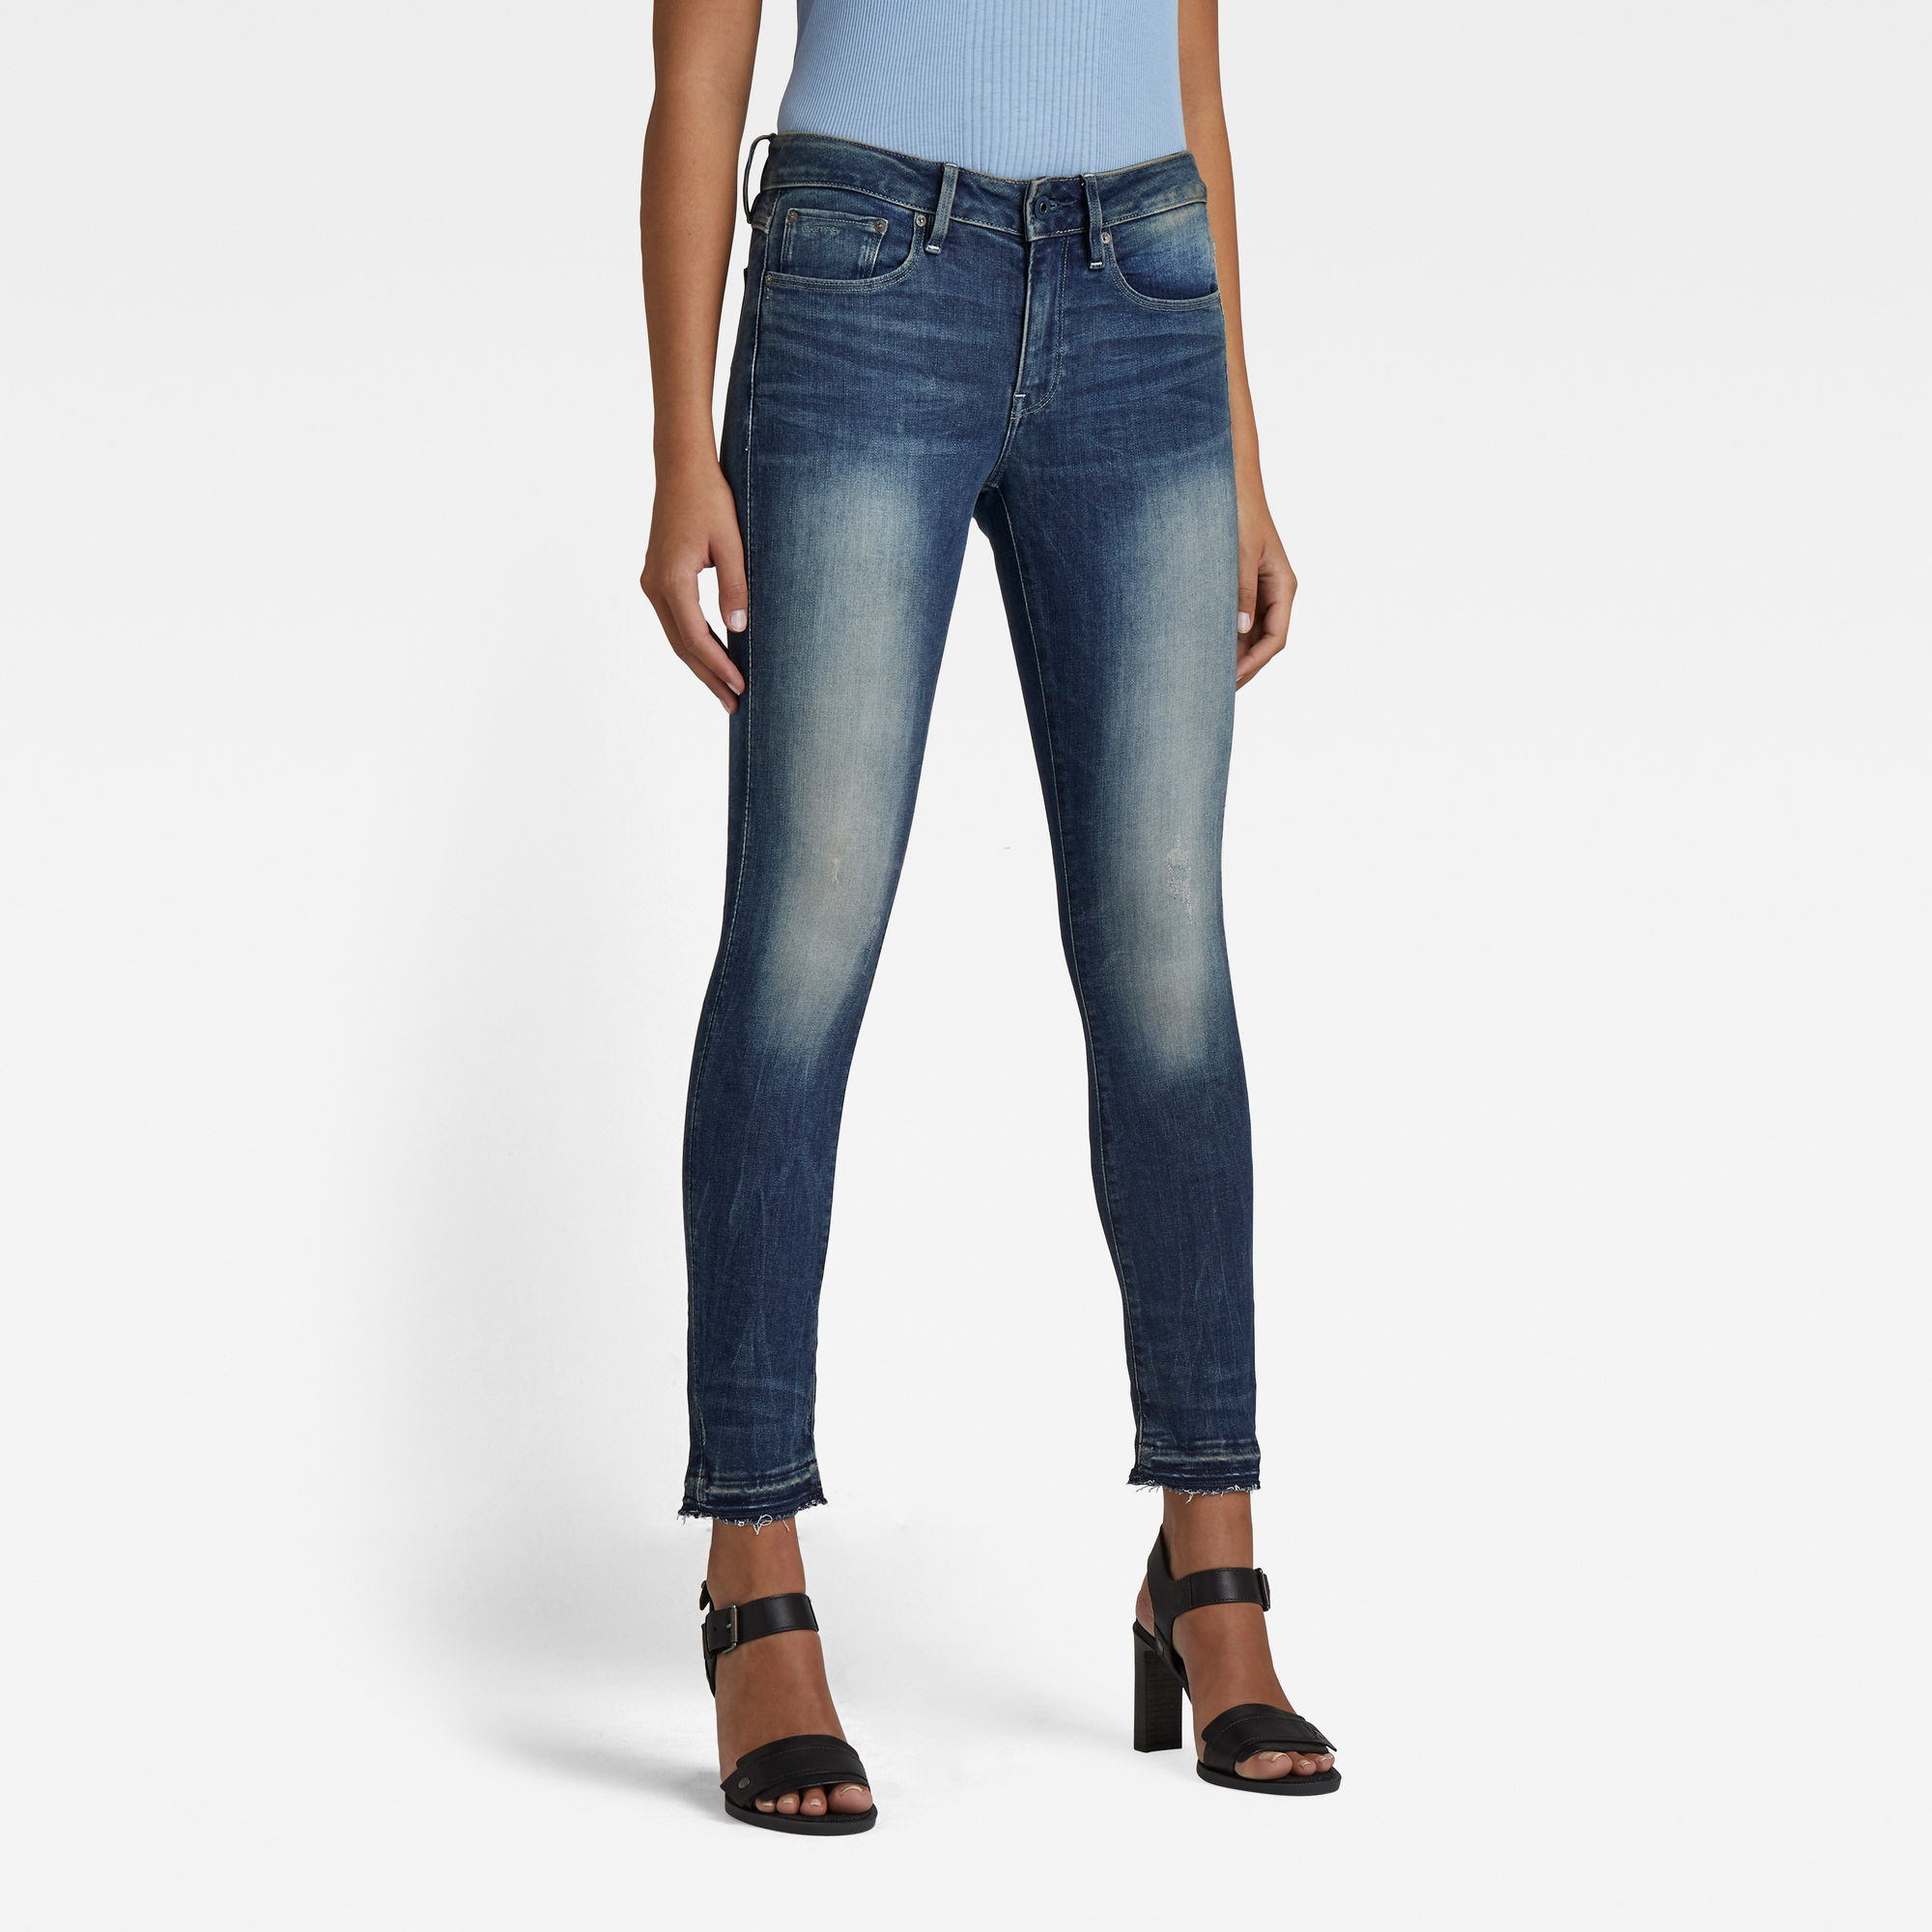 G-Star RAW Dames 3301 Mid Skinny Ankle Jeans Blauw